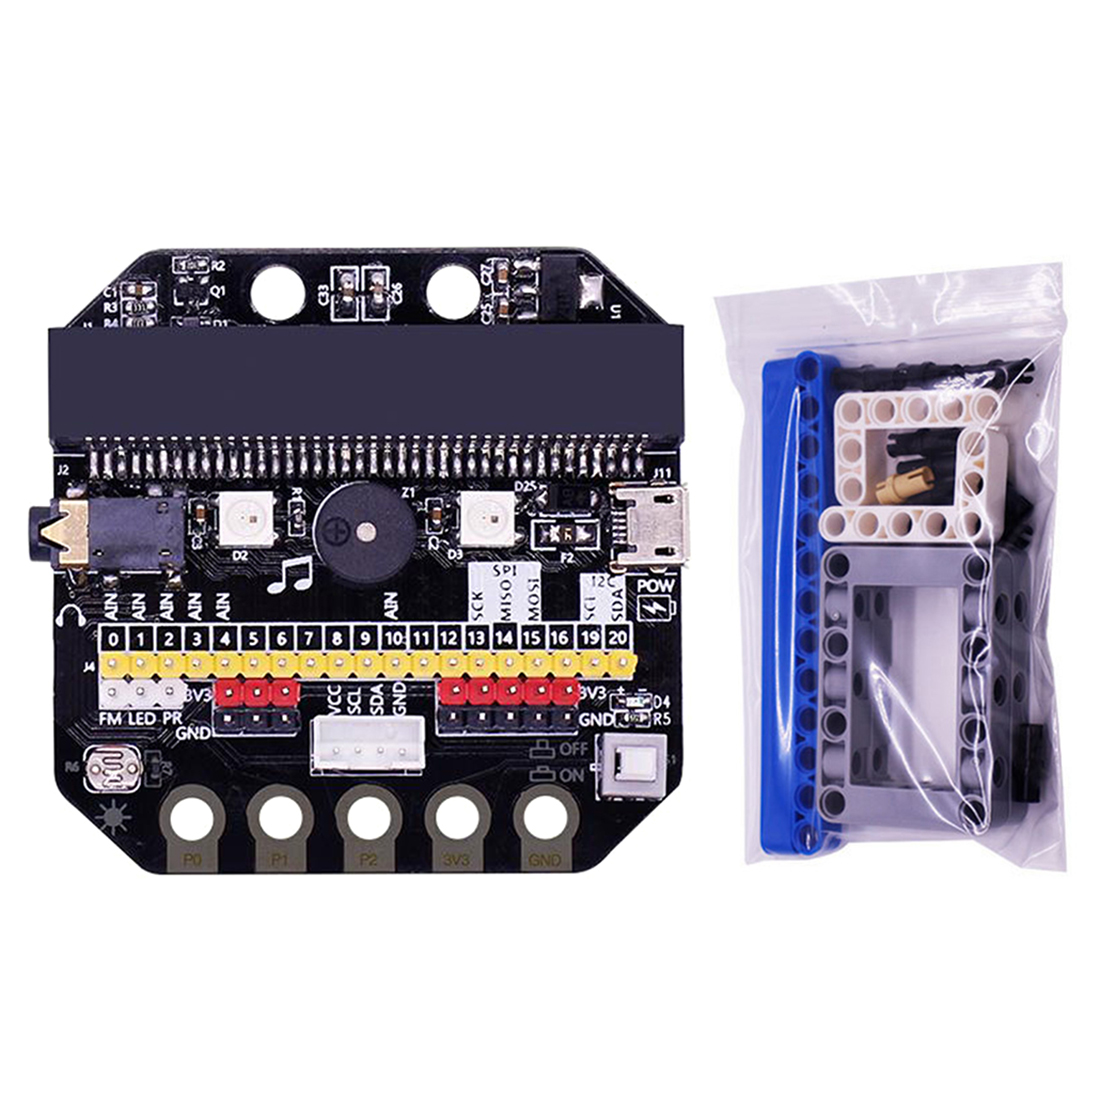 Basic:Bit IO Expansion Board Horizontal Type Pinboard Microbit Python Development Board With Expansion Pack For Micro:Bit Hot